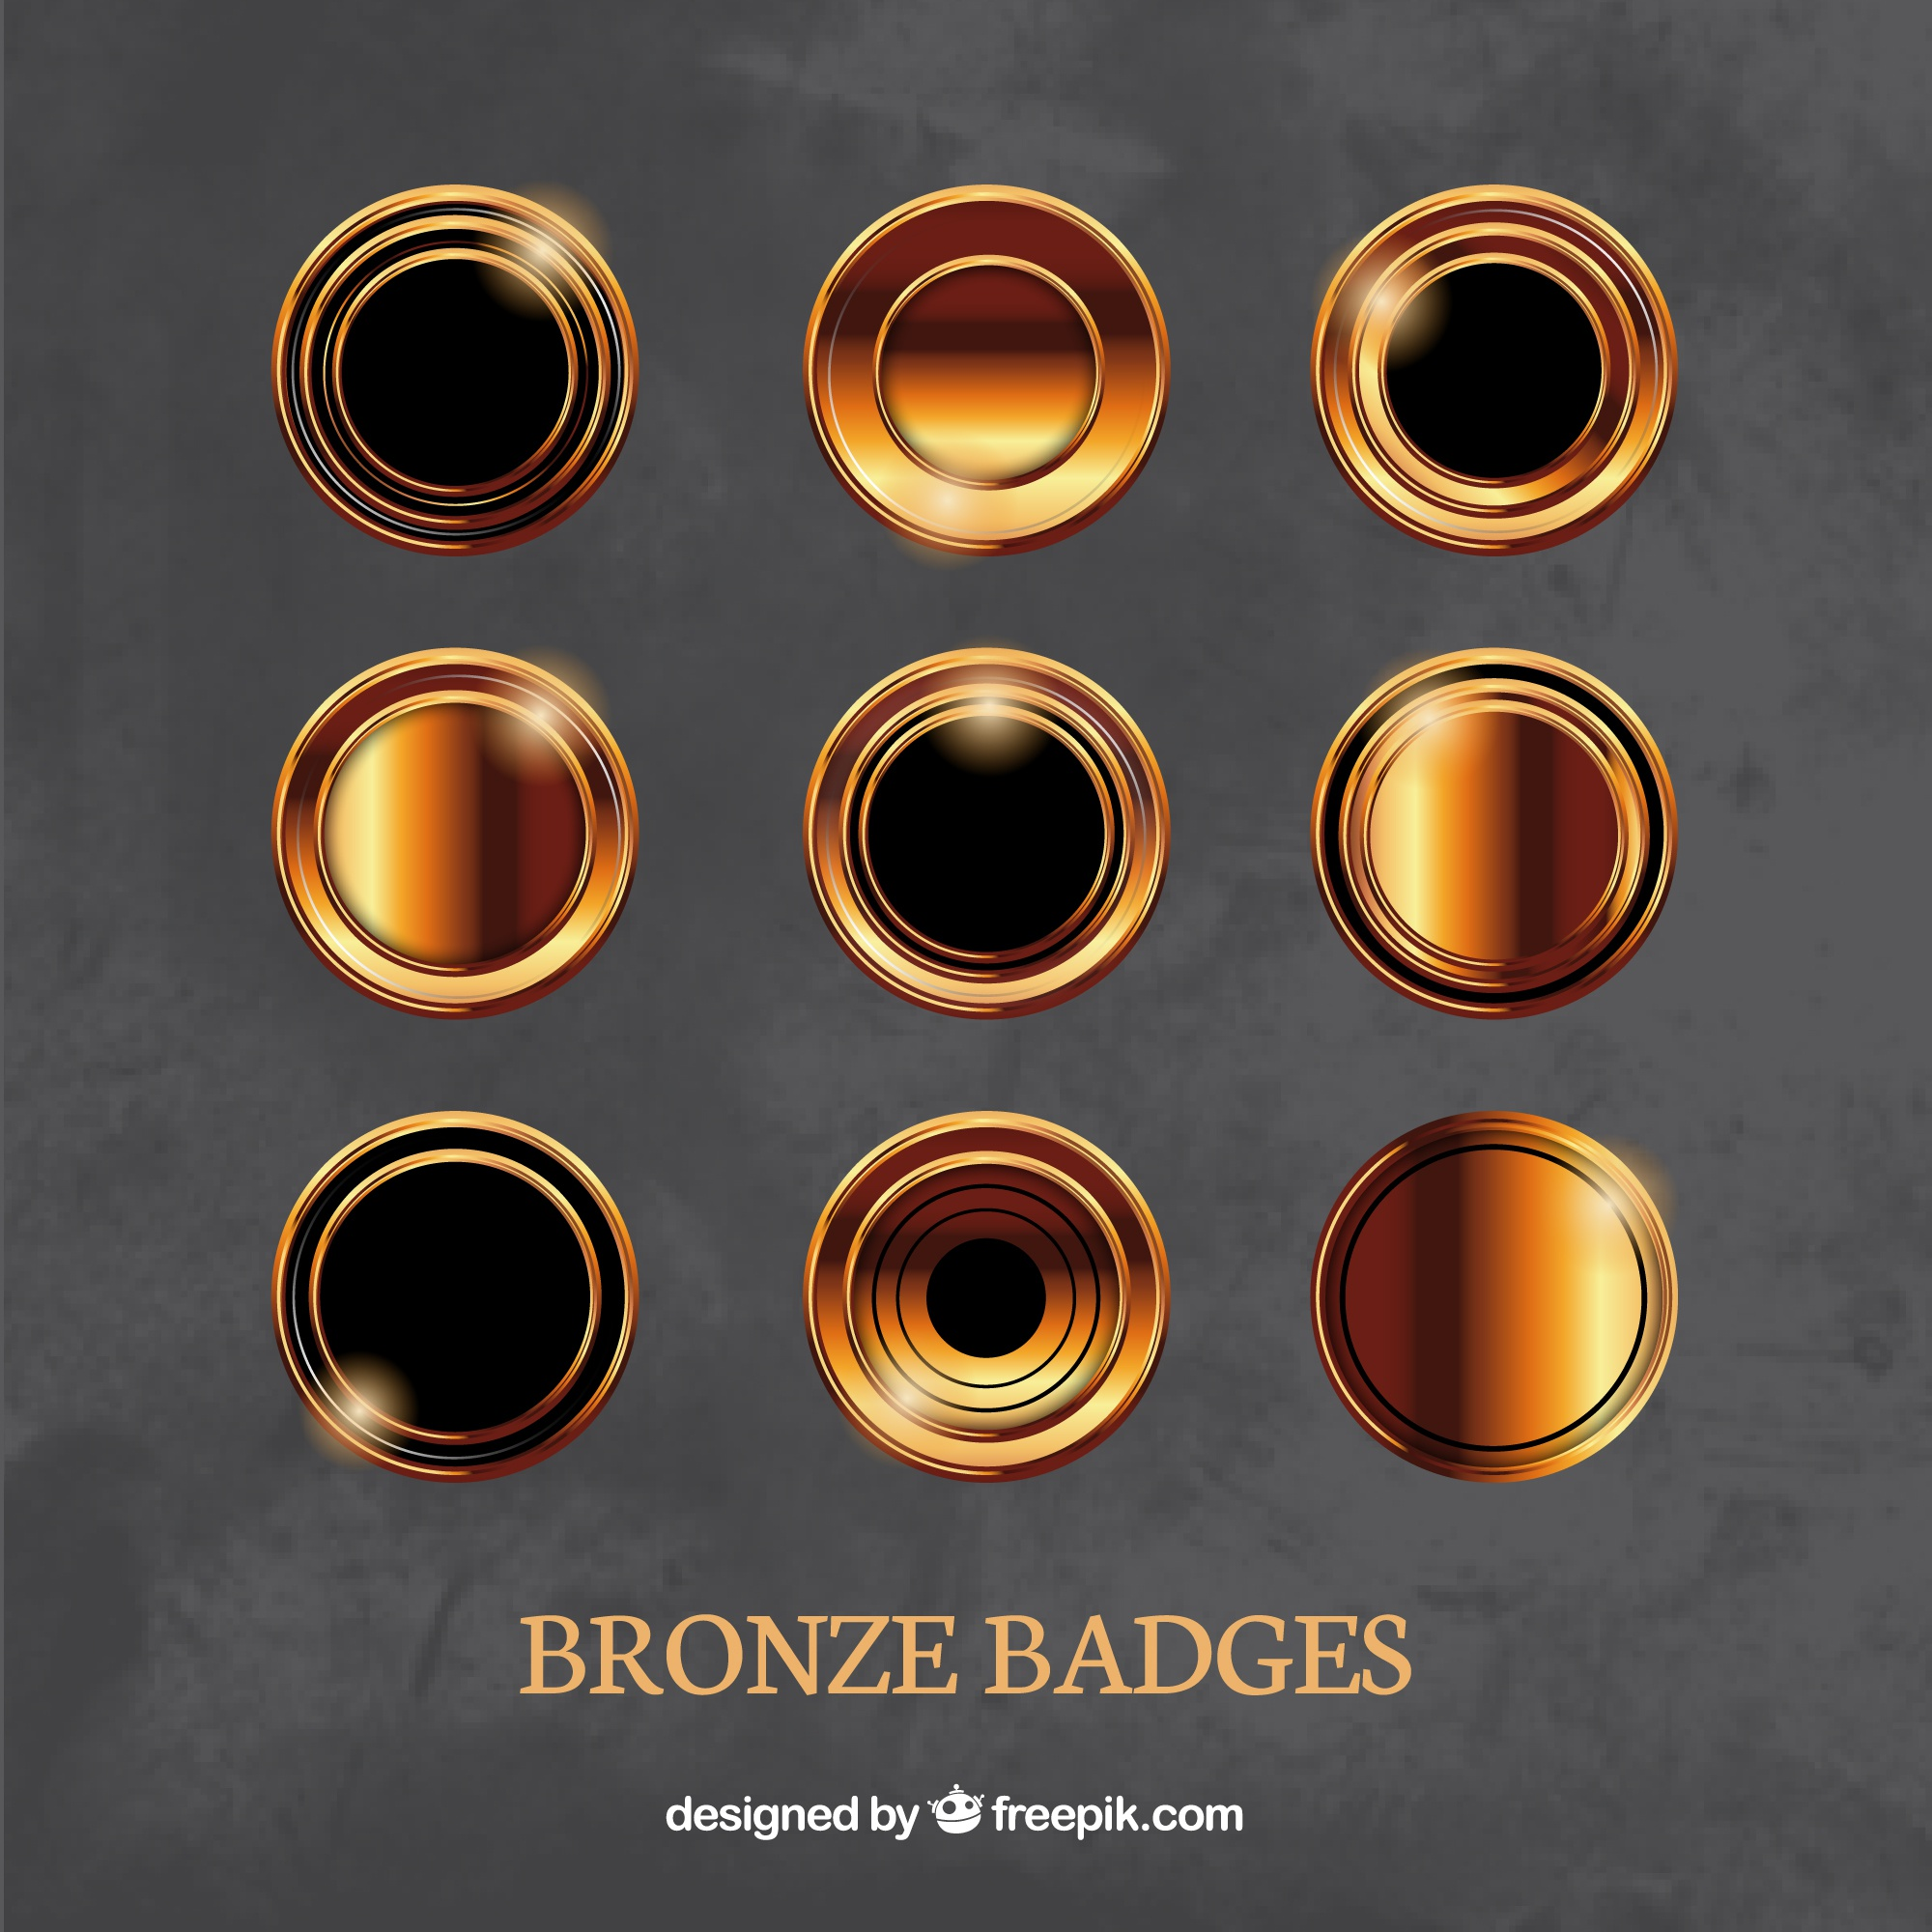 Brons badges